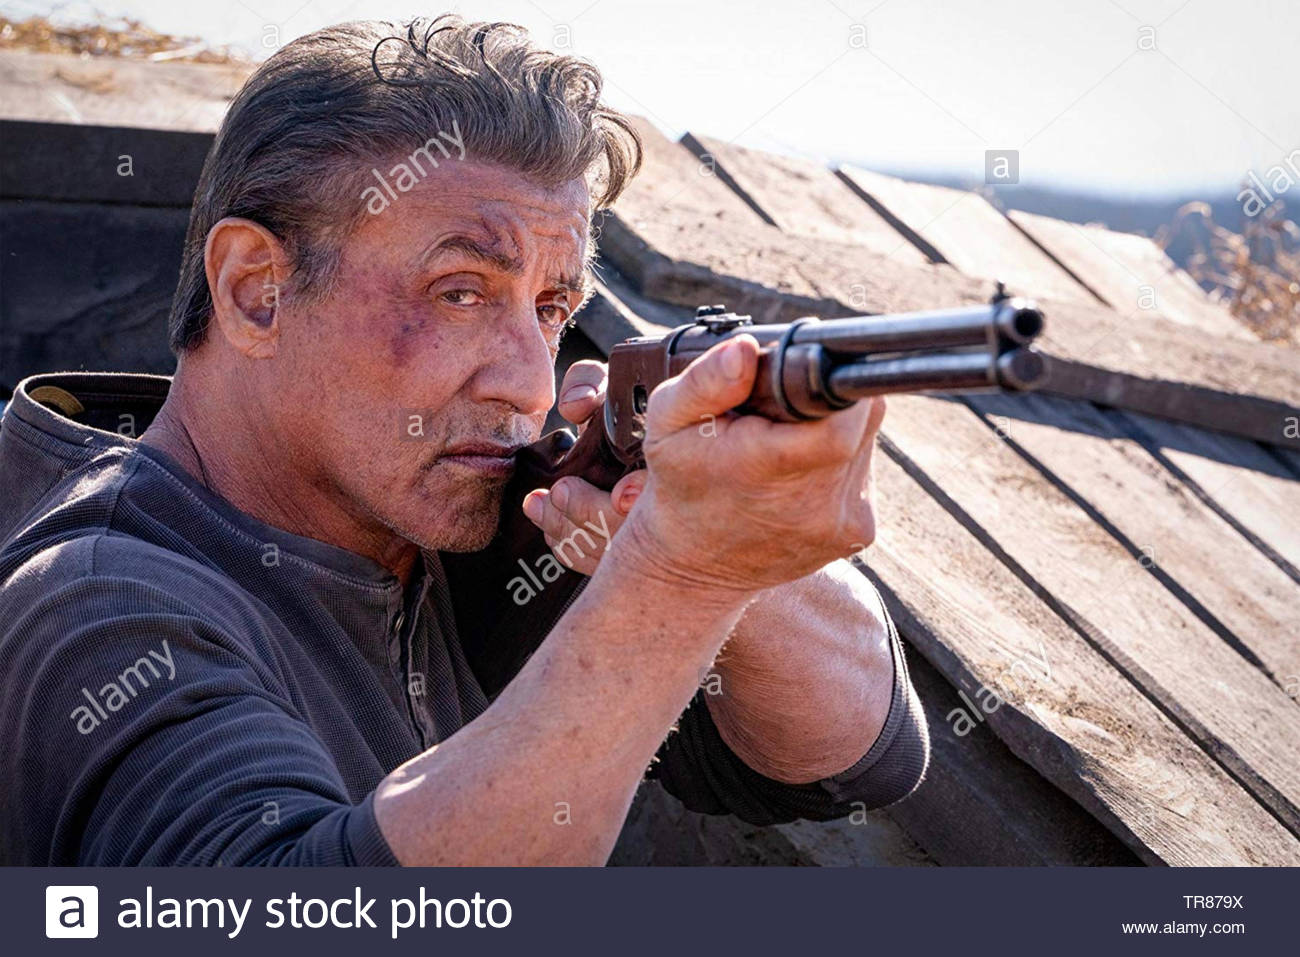 RAMBO: LAST BLOOD 2019 Lionsgate film with Sylvester Stallone - Stock Image